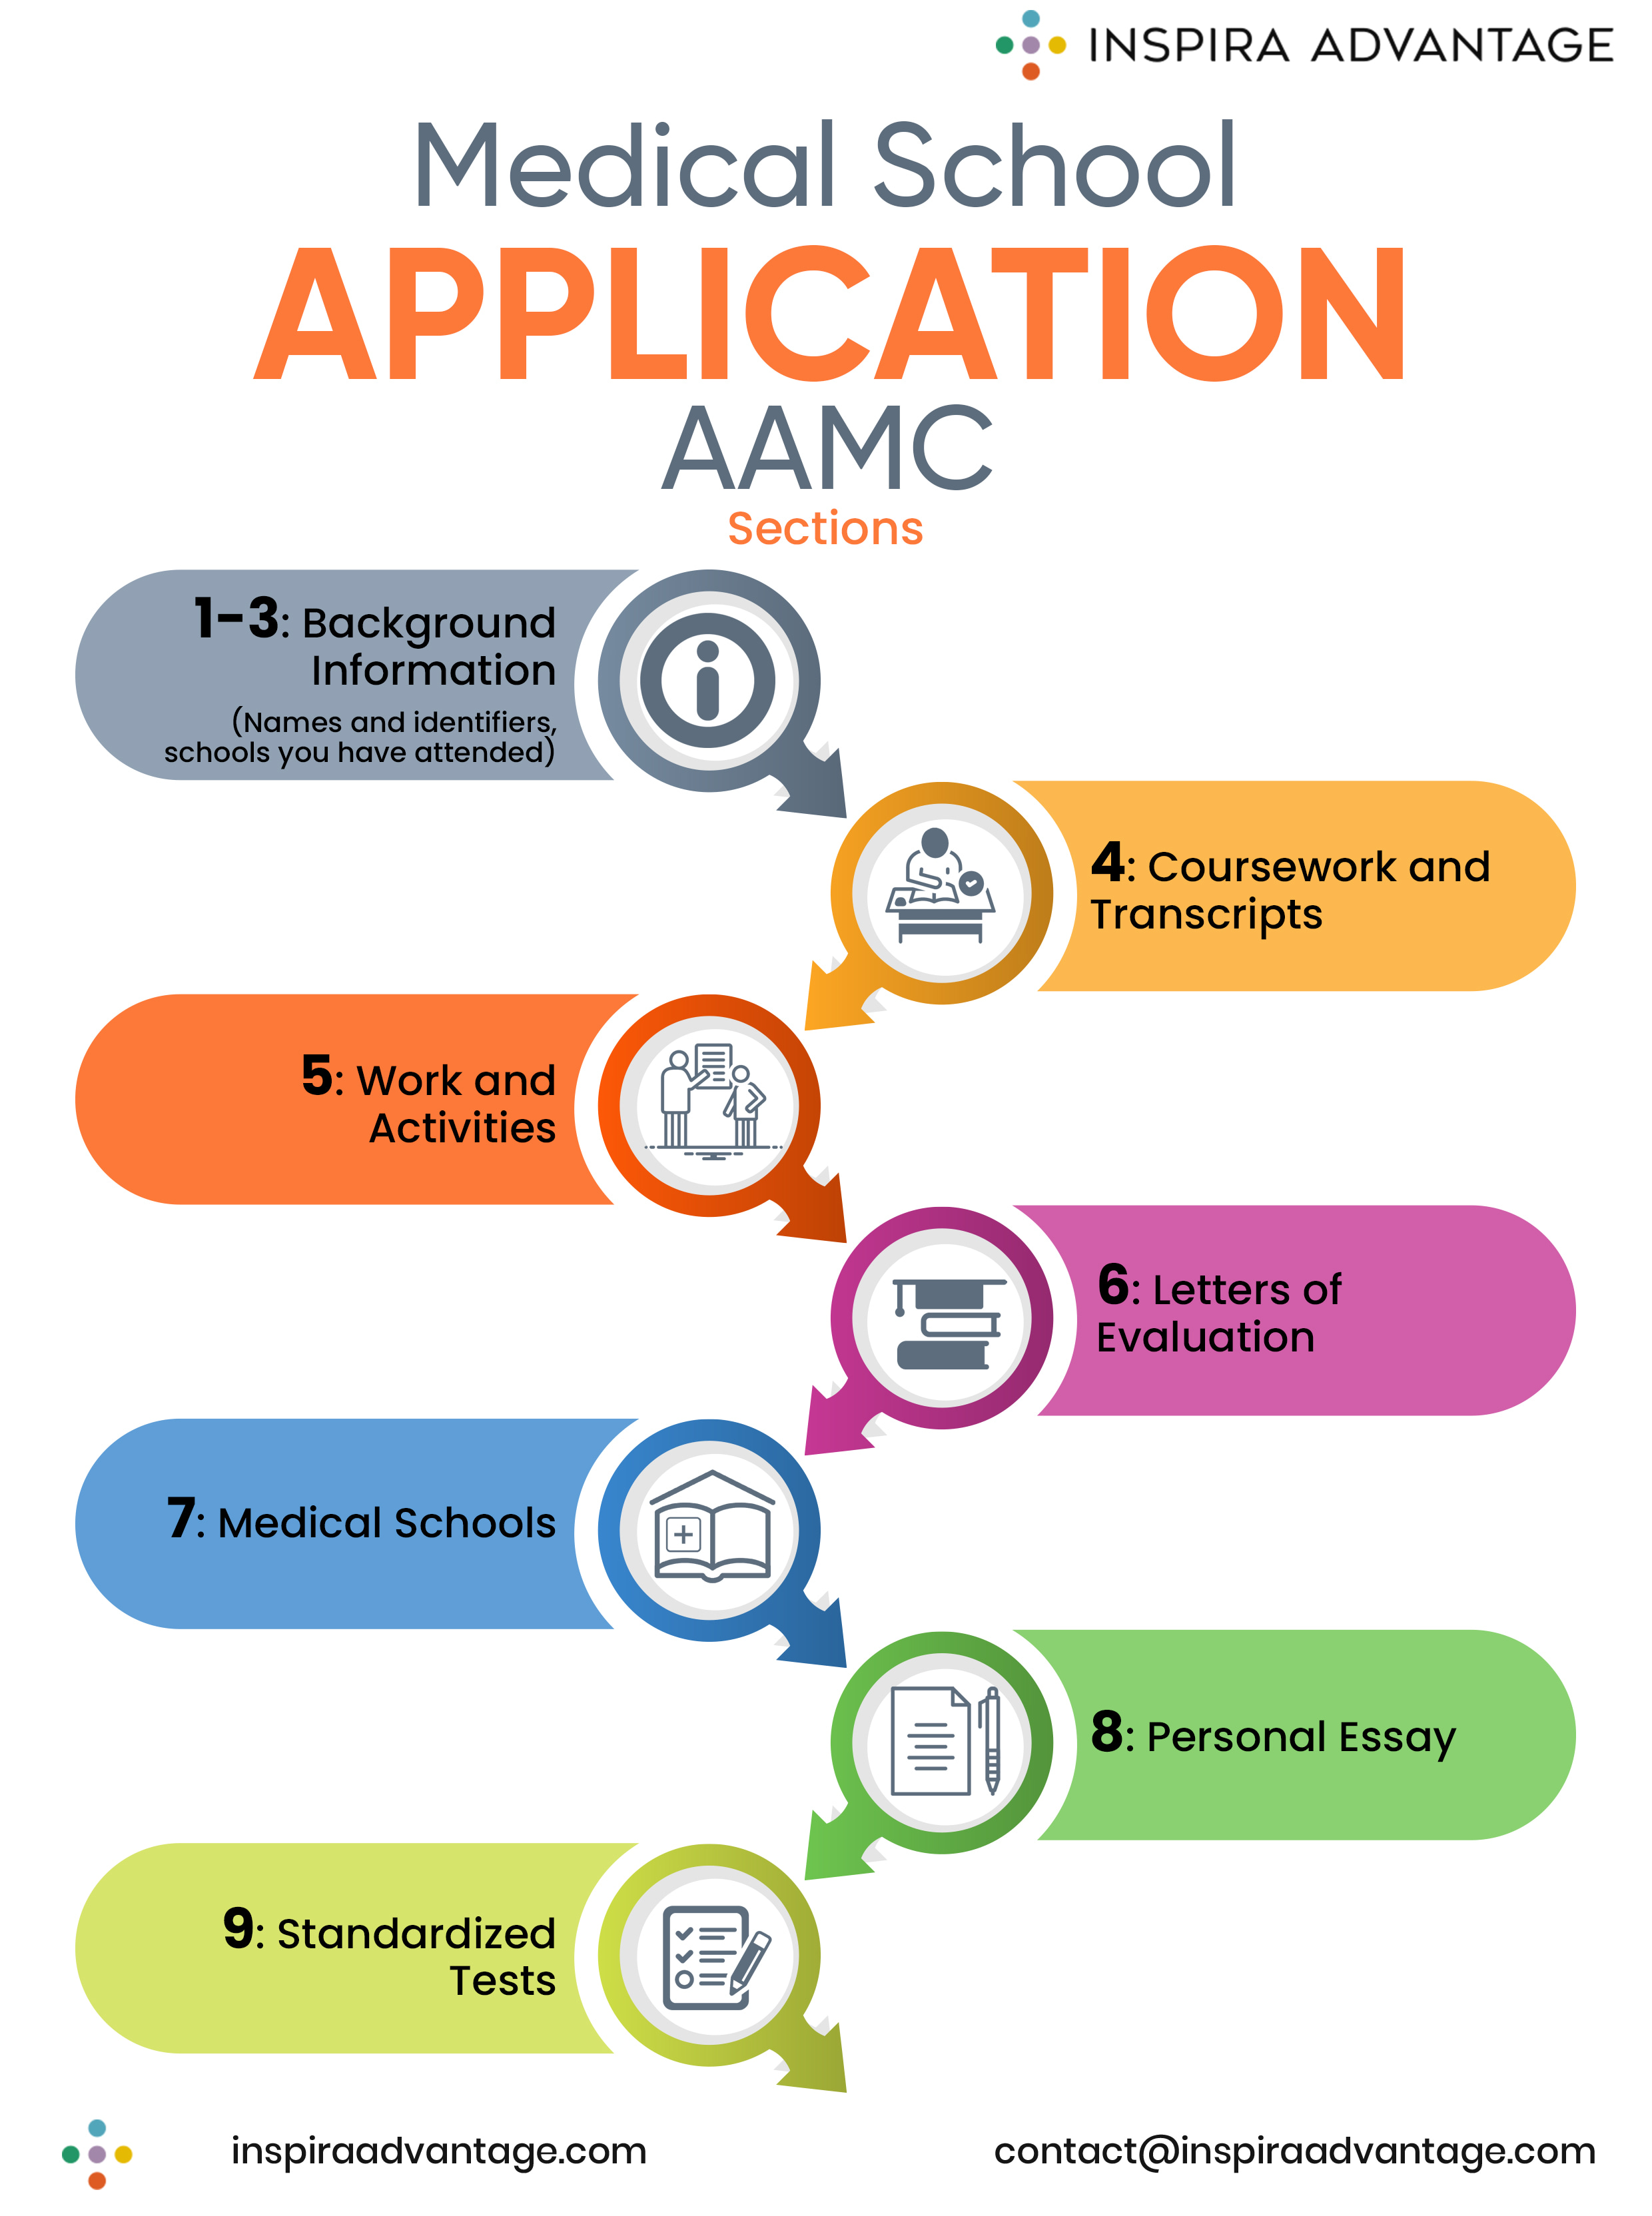 medical school application AAMC sections